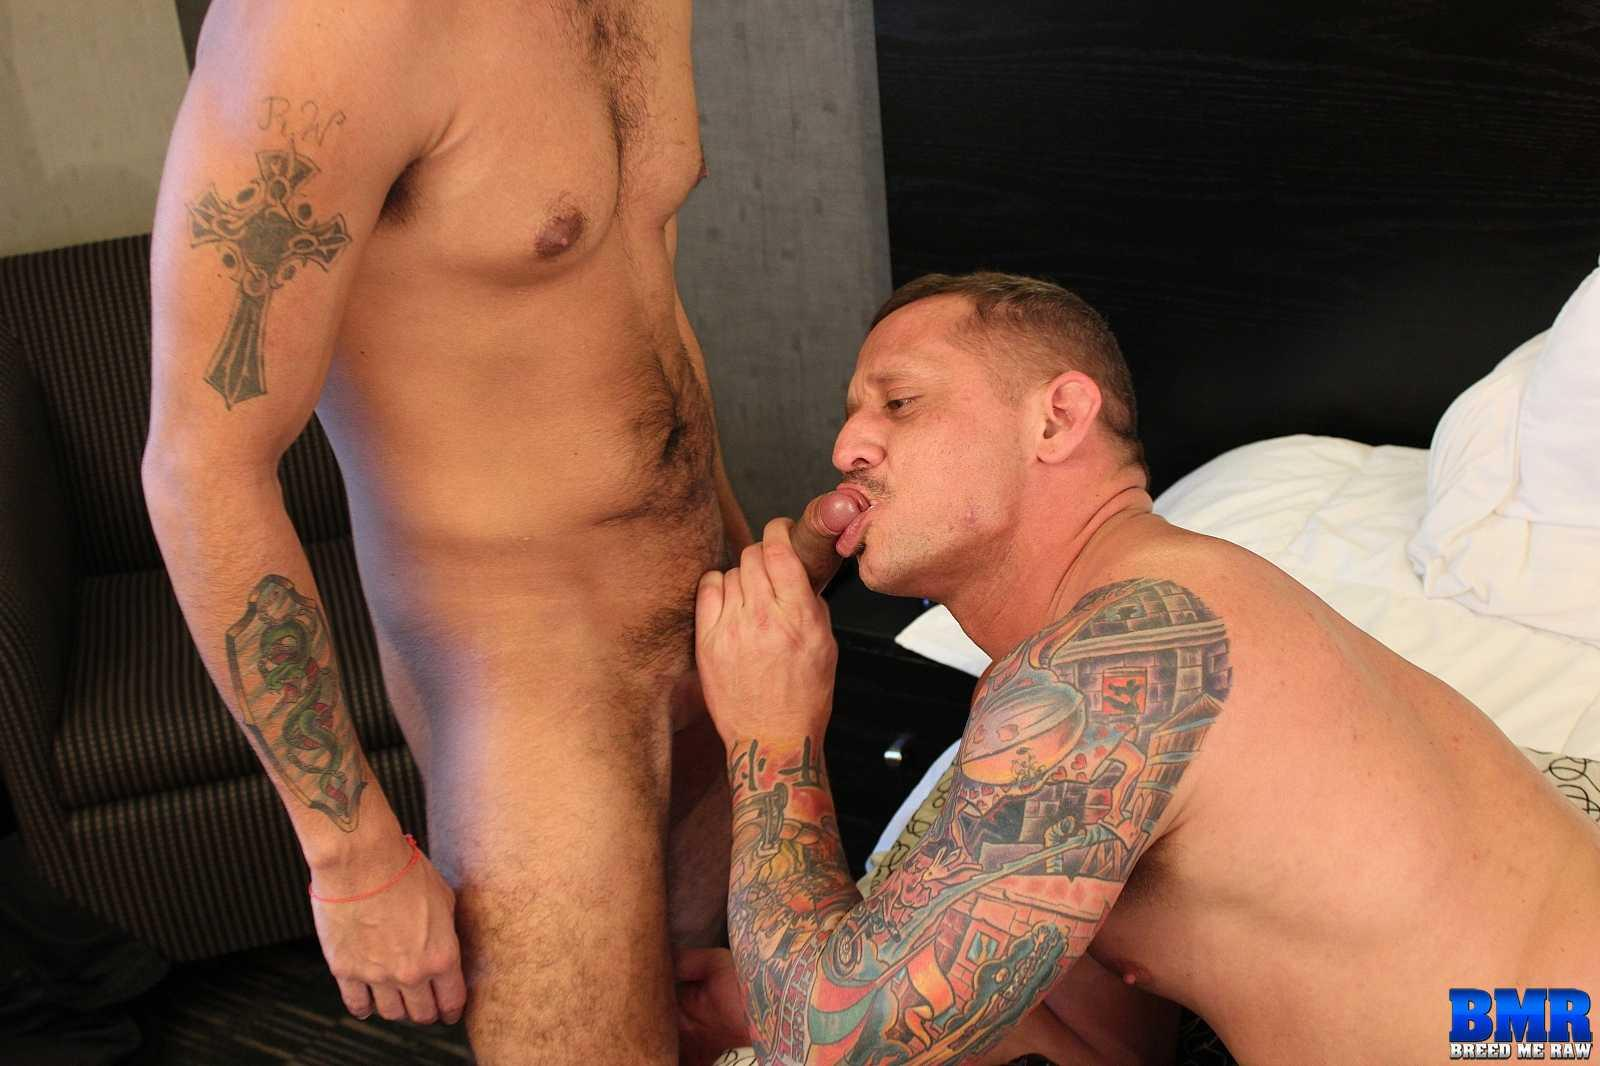 Breed-Me-Raw-Kyle-Savage-and-Sebastian-Rio-White-Daddy-Gets-Barebacked-By-Big-Uncut-Latino-Cock-Amateur-Gay-Porn-02 Jock Strap Daddy Takes A Big Latino Uncut Cock Bareback And Raw